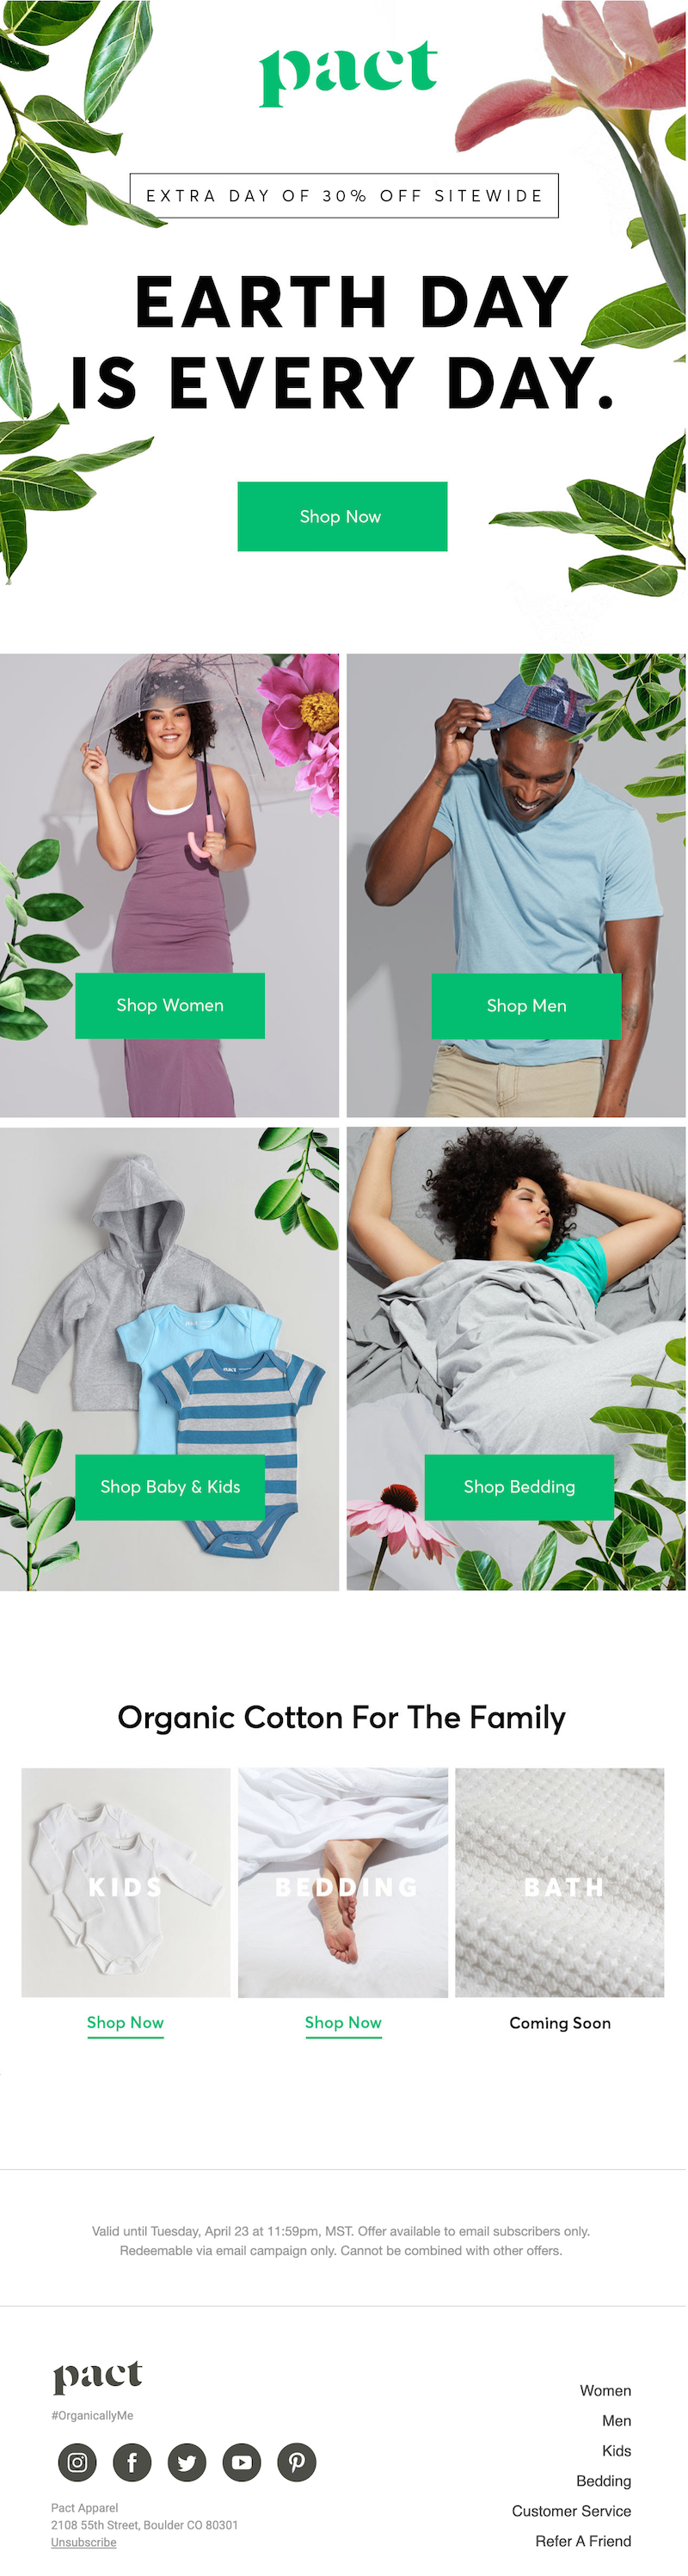 earth day email design